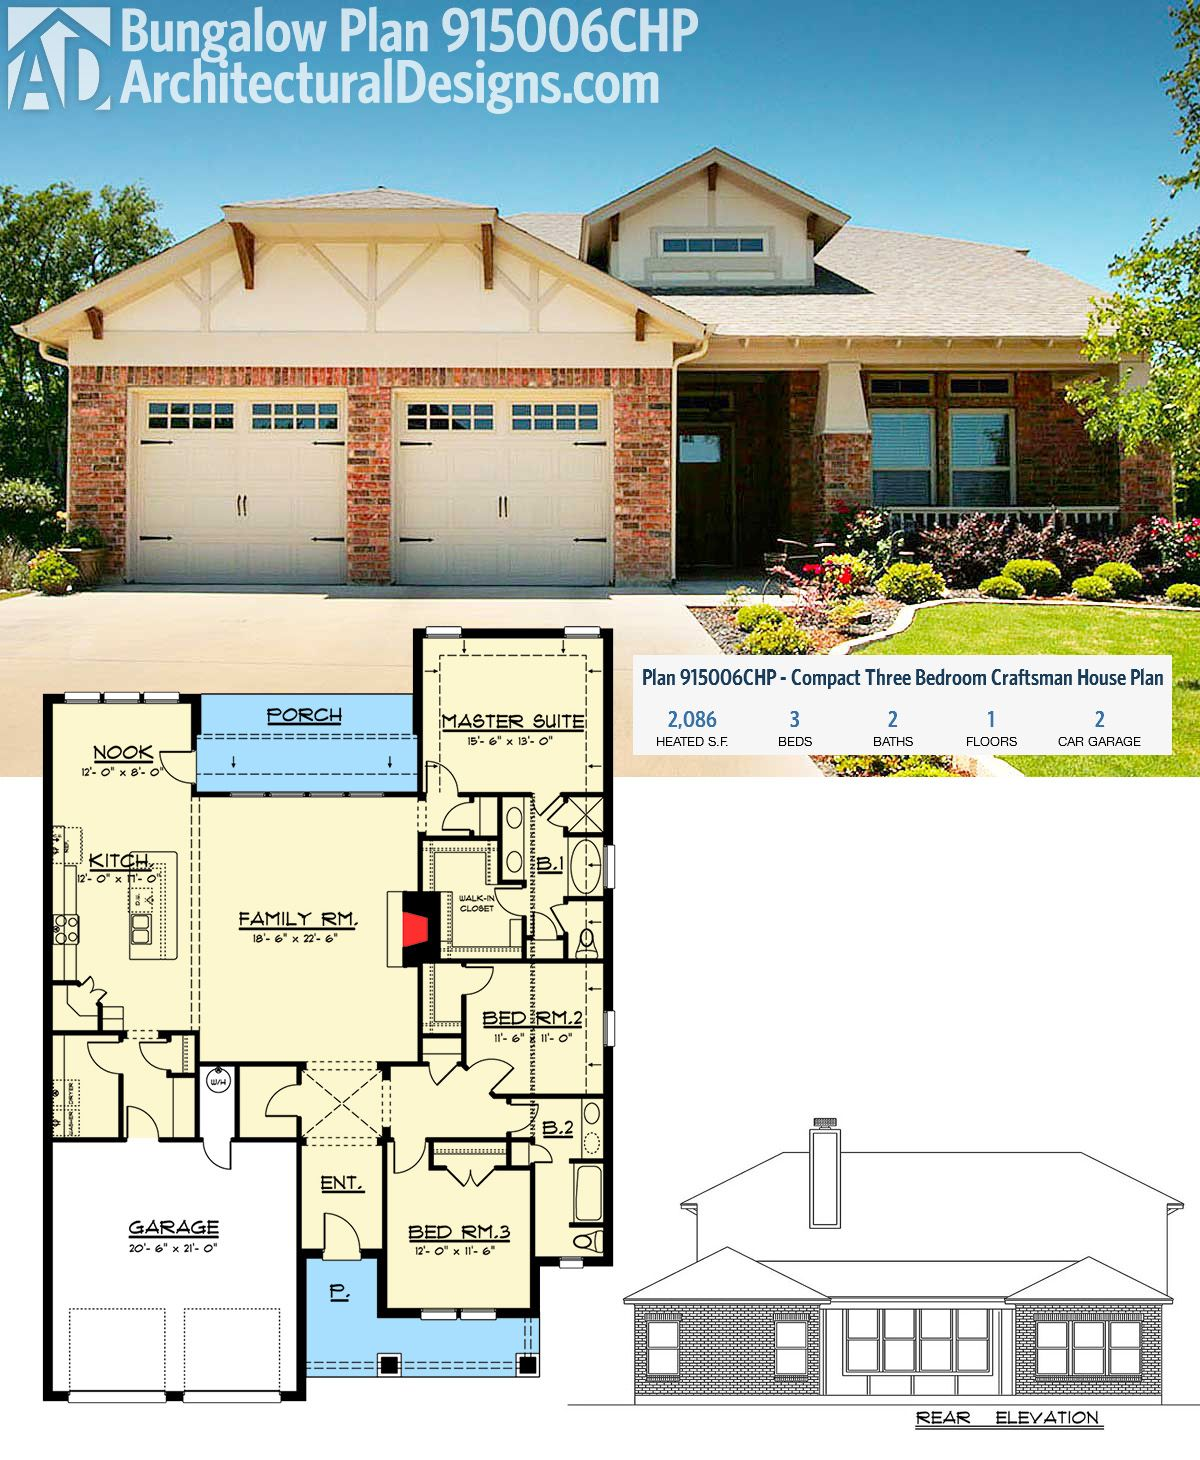 plan 915006chp: compact three bedroom craftsman house plan